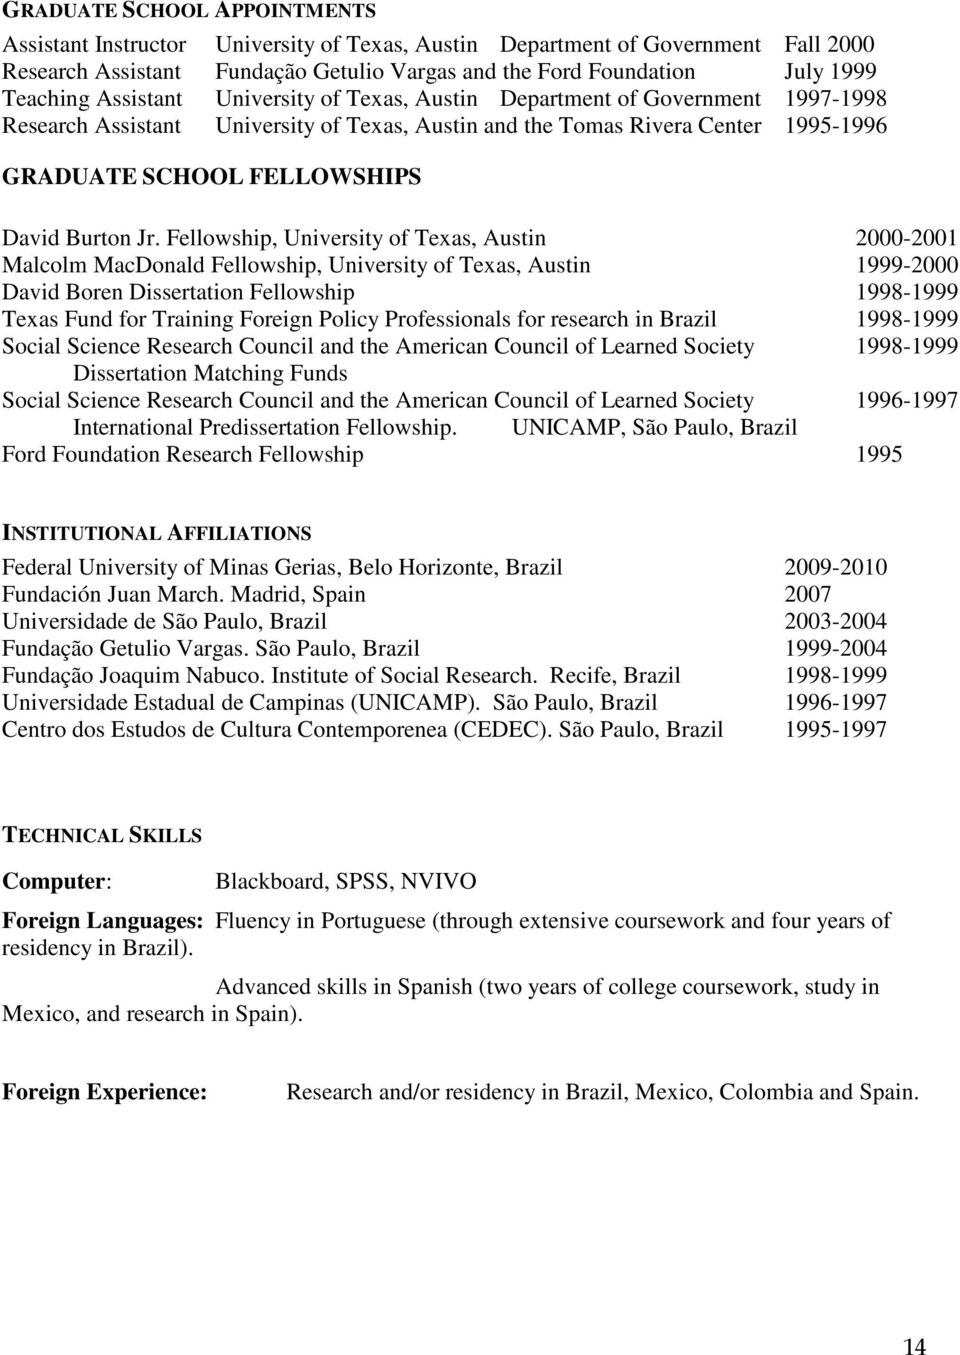 Jr. Fellowship, University of Texas, Austin 2000-2001 Malcolm MacDonald Fellowship, University of Texas, Austin 1999-2000 David Boren Dissertation Fellowship 1998-1999 Texas Fund for Training Foreign